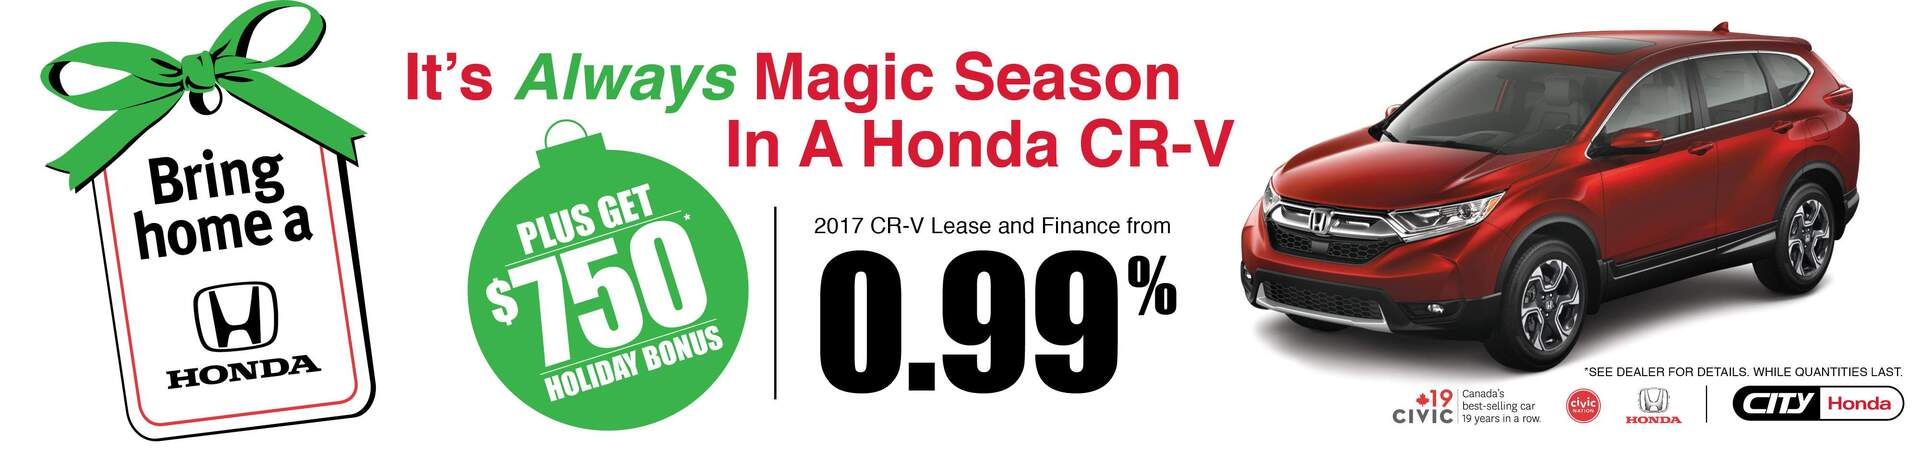 Bring Home A Honda CR-V